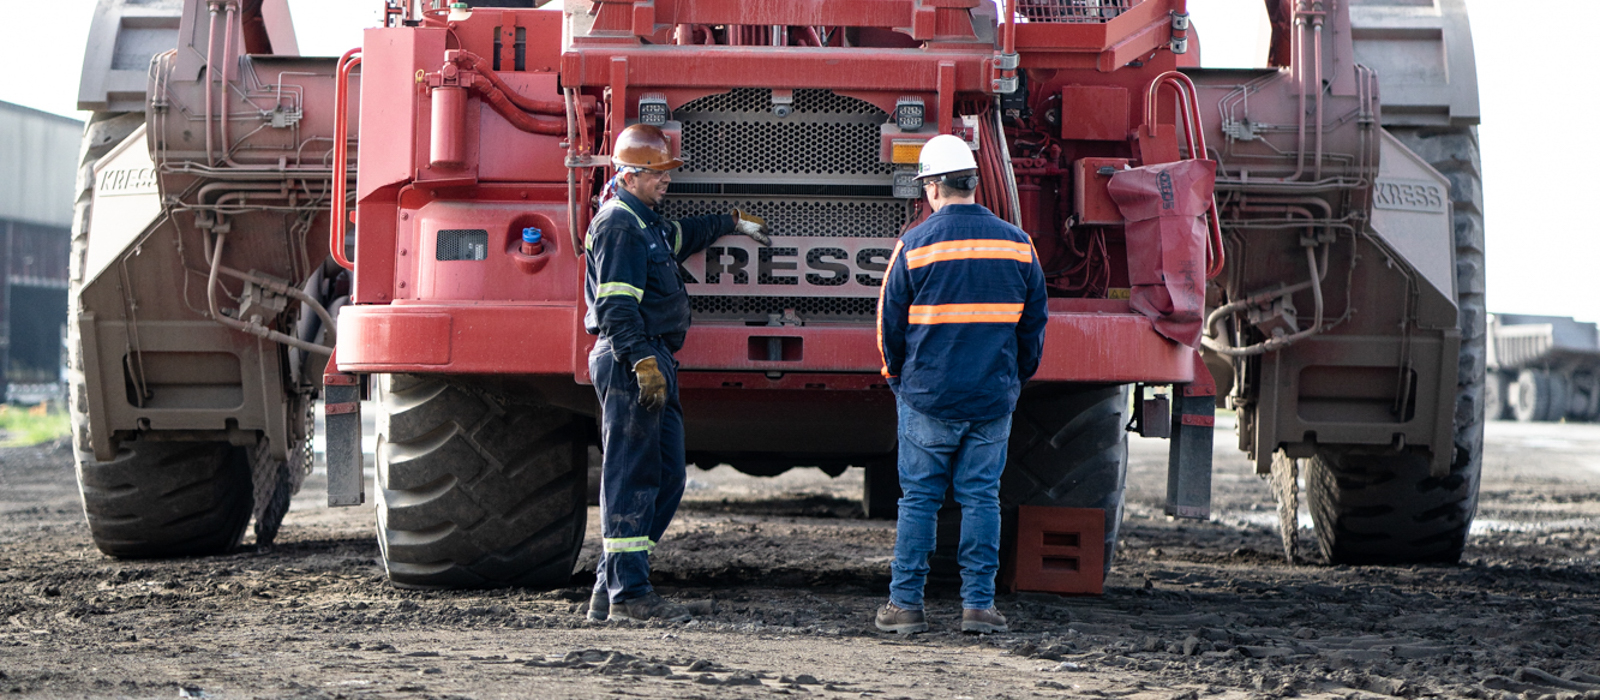 Two Employees Wearing Hard Hats And Neon Safety Vests Standing In Front Of Red Kress Heavy Equipment At Project Site